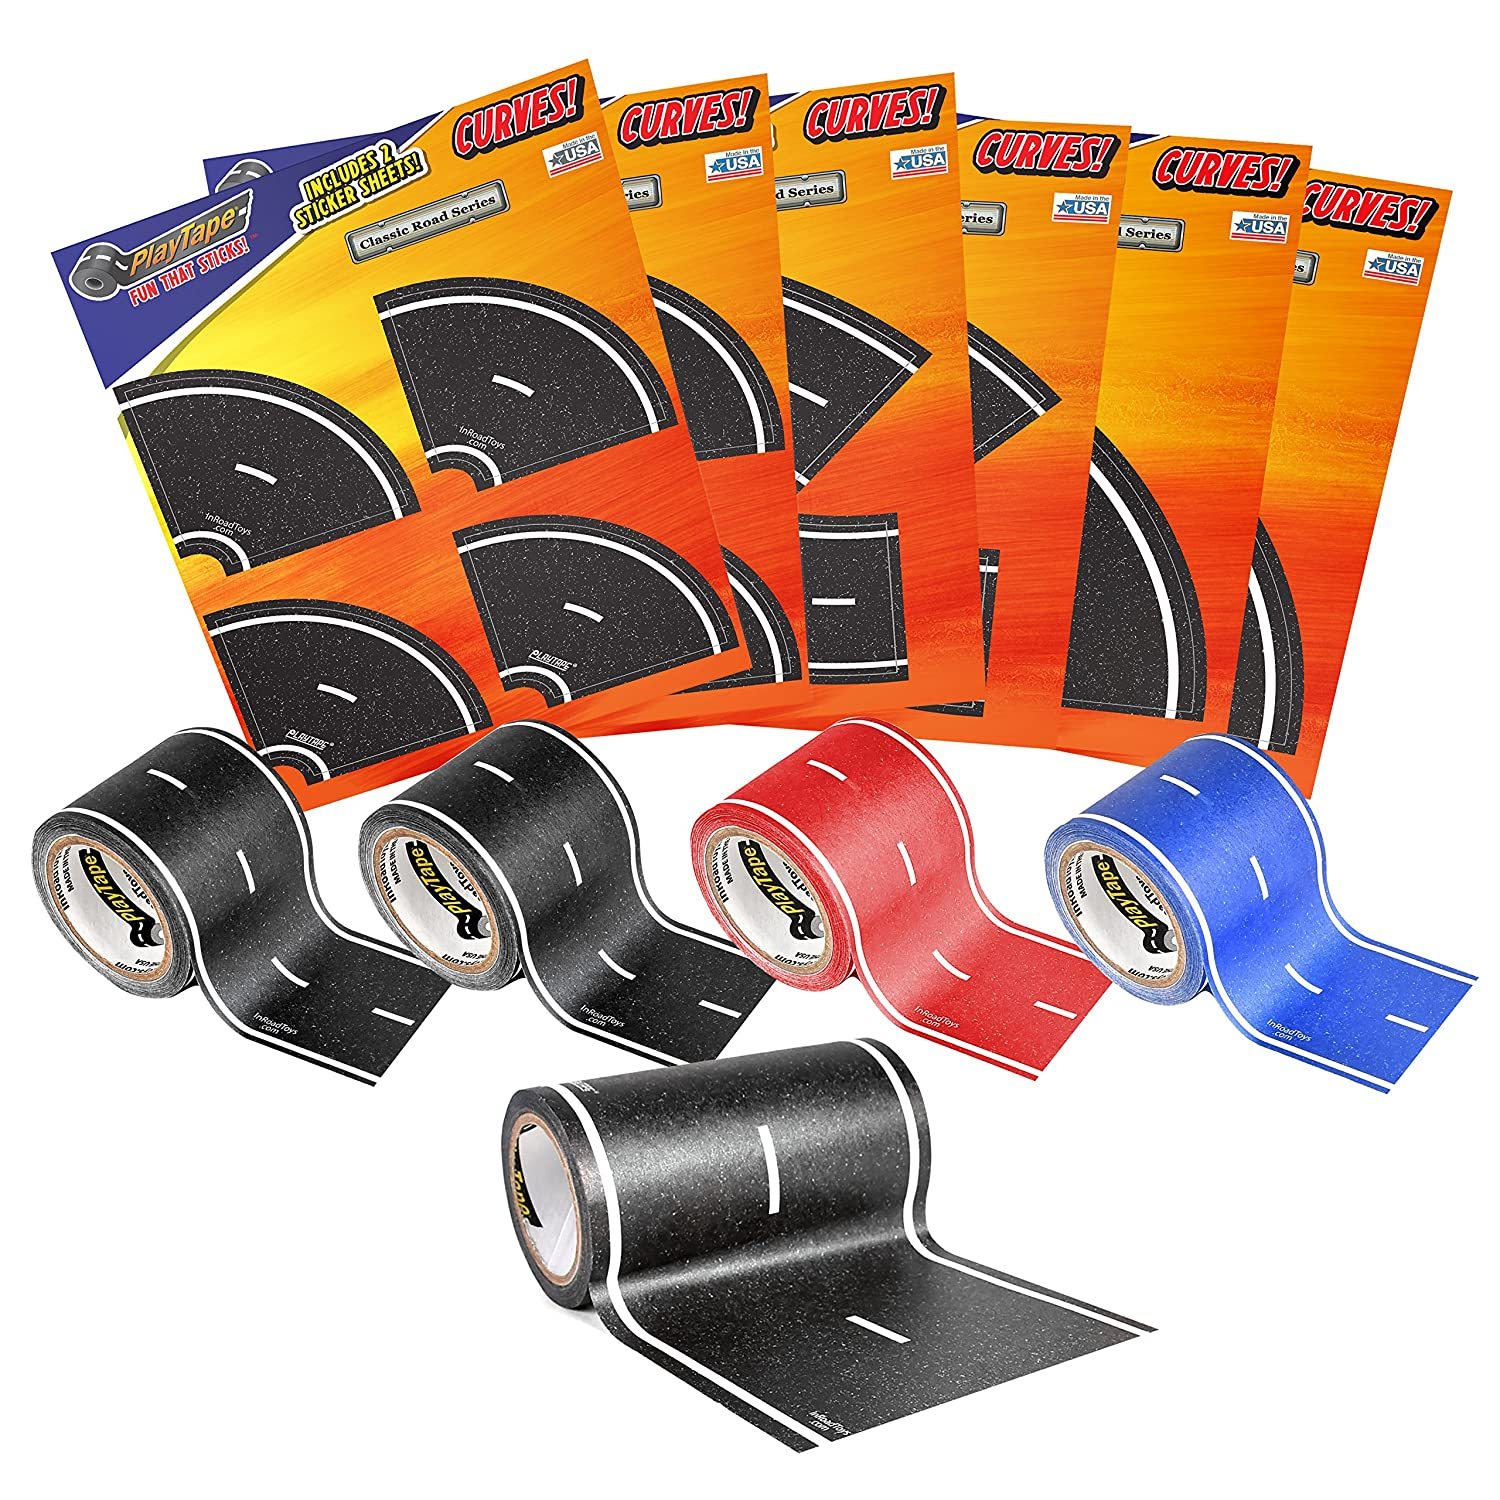 PlayTape Road Rally Road and Curve Assortment for 5 7 Kids Road Car Tape Great for Kids Sticker Roll for Cars and Train Sets Stick to Floors and Walls Quick Cleanup Children Toys Birthday Gift